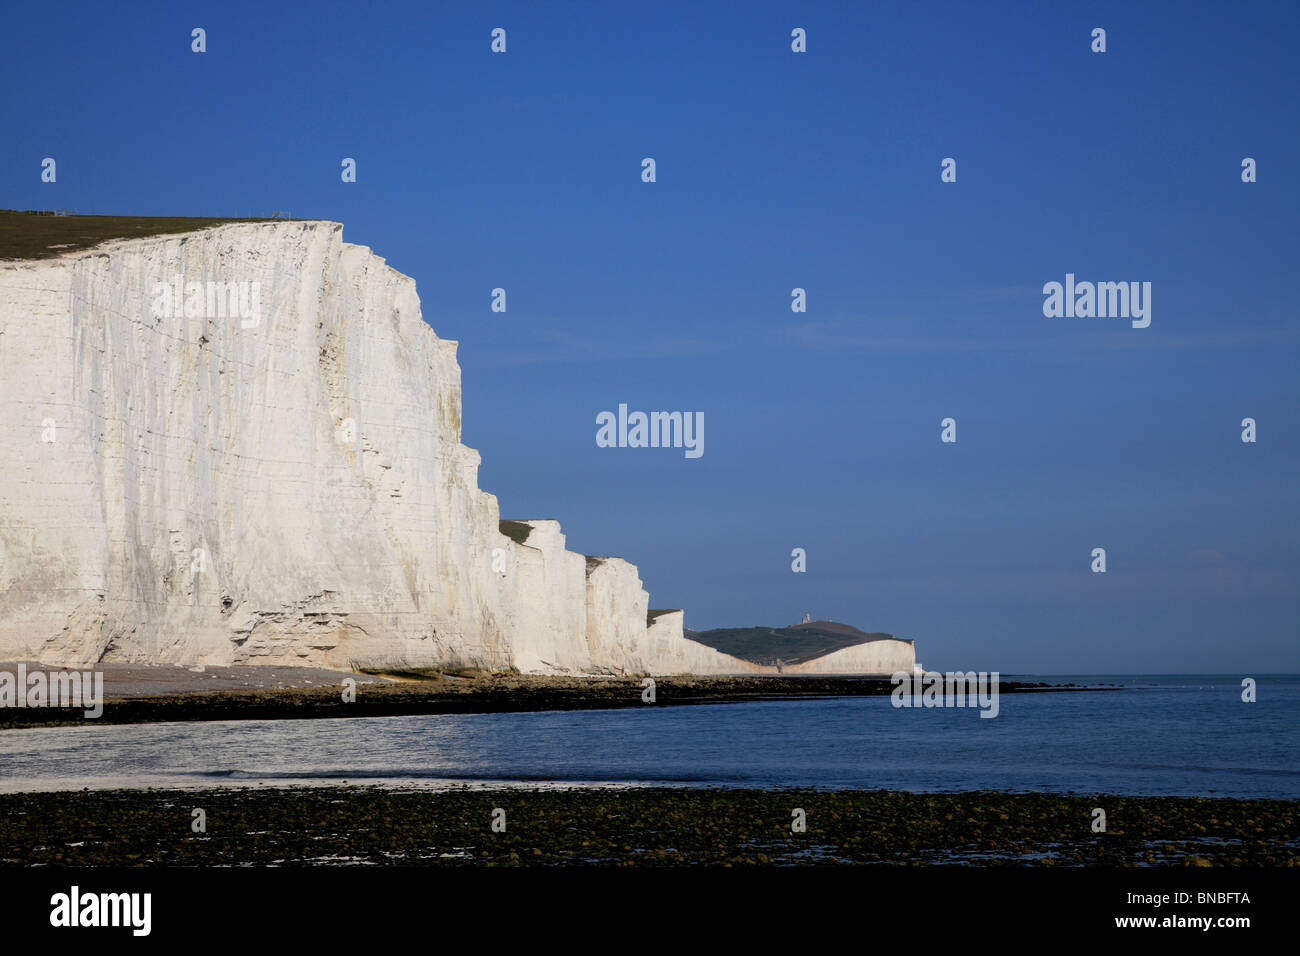 3233.Seven Sisters, Cuckmere Haven, East Sussex, UK Stock Photo